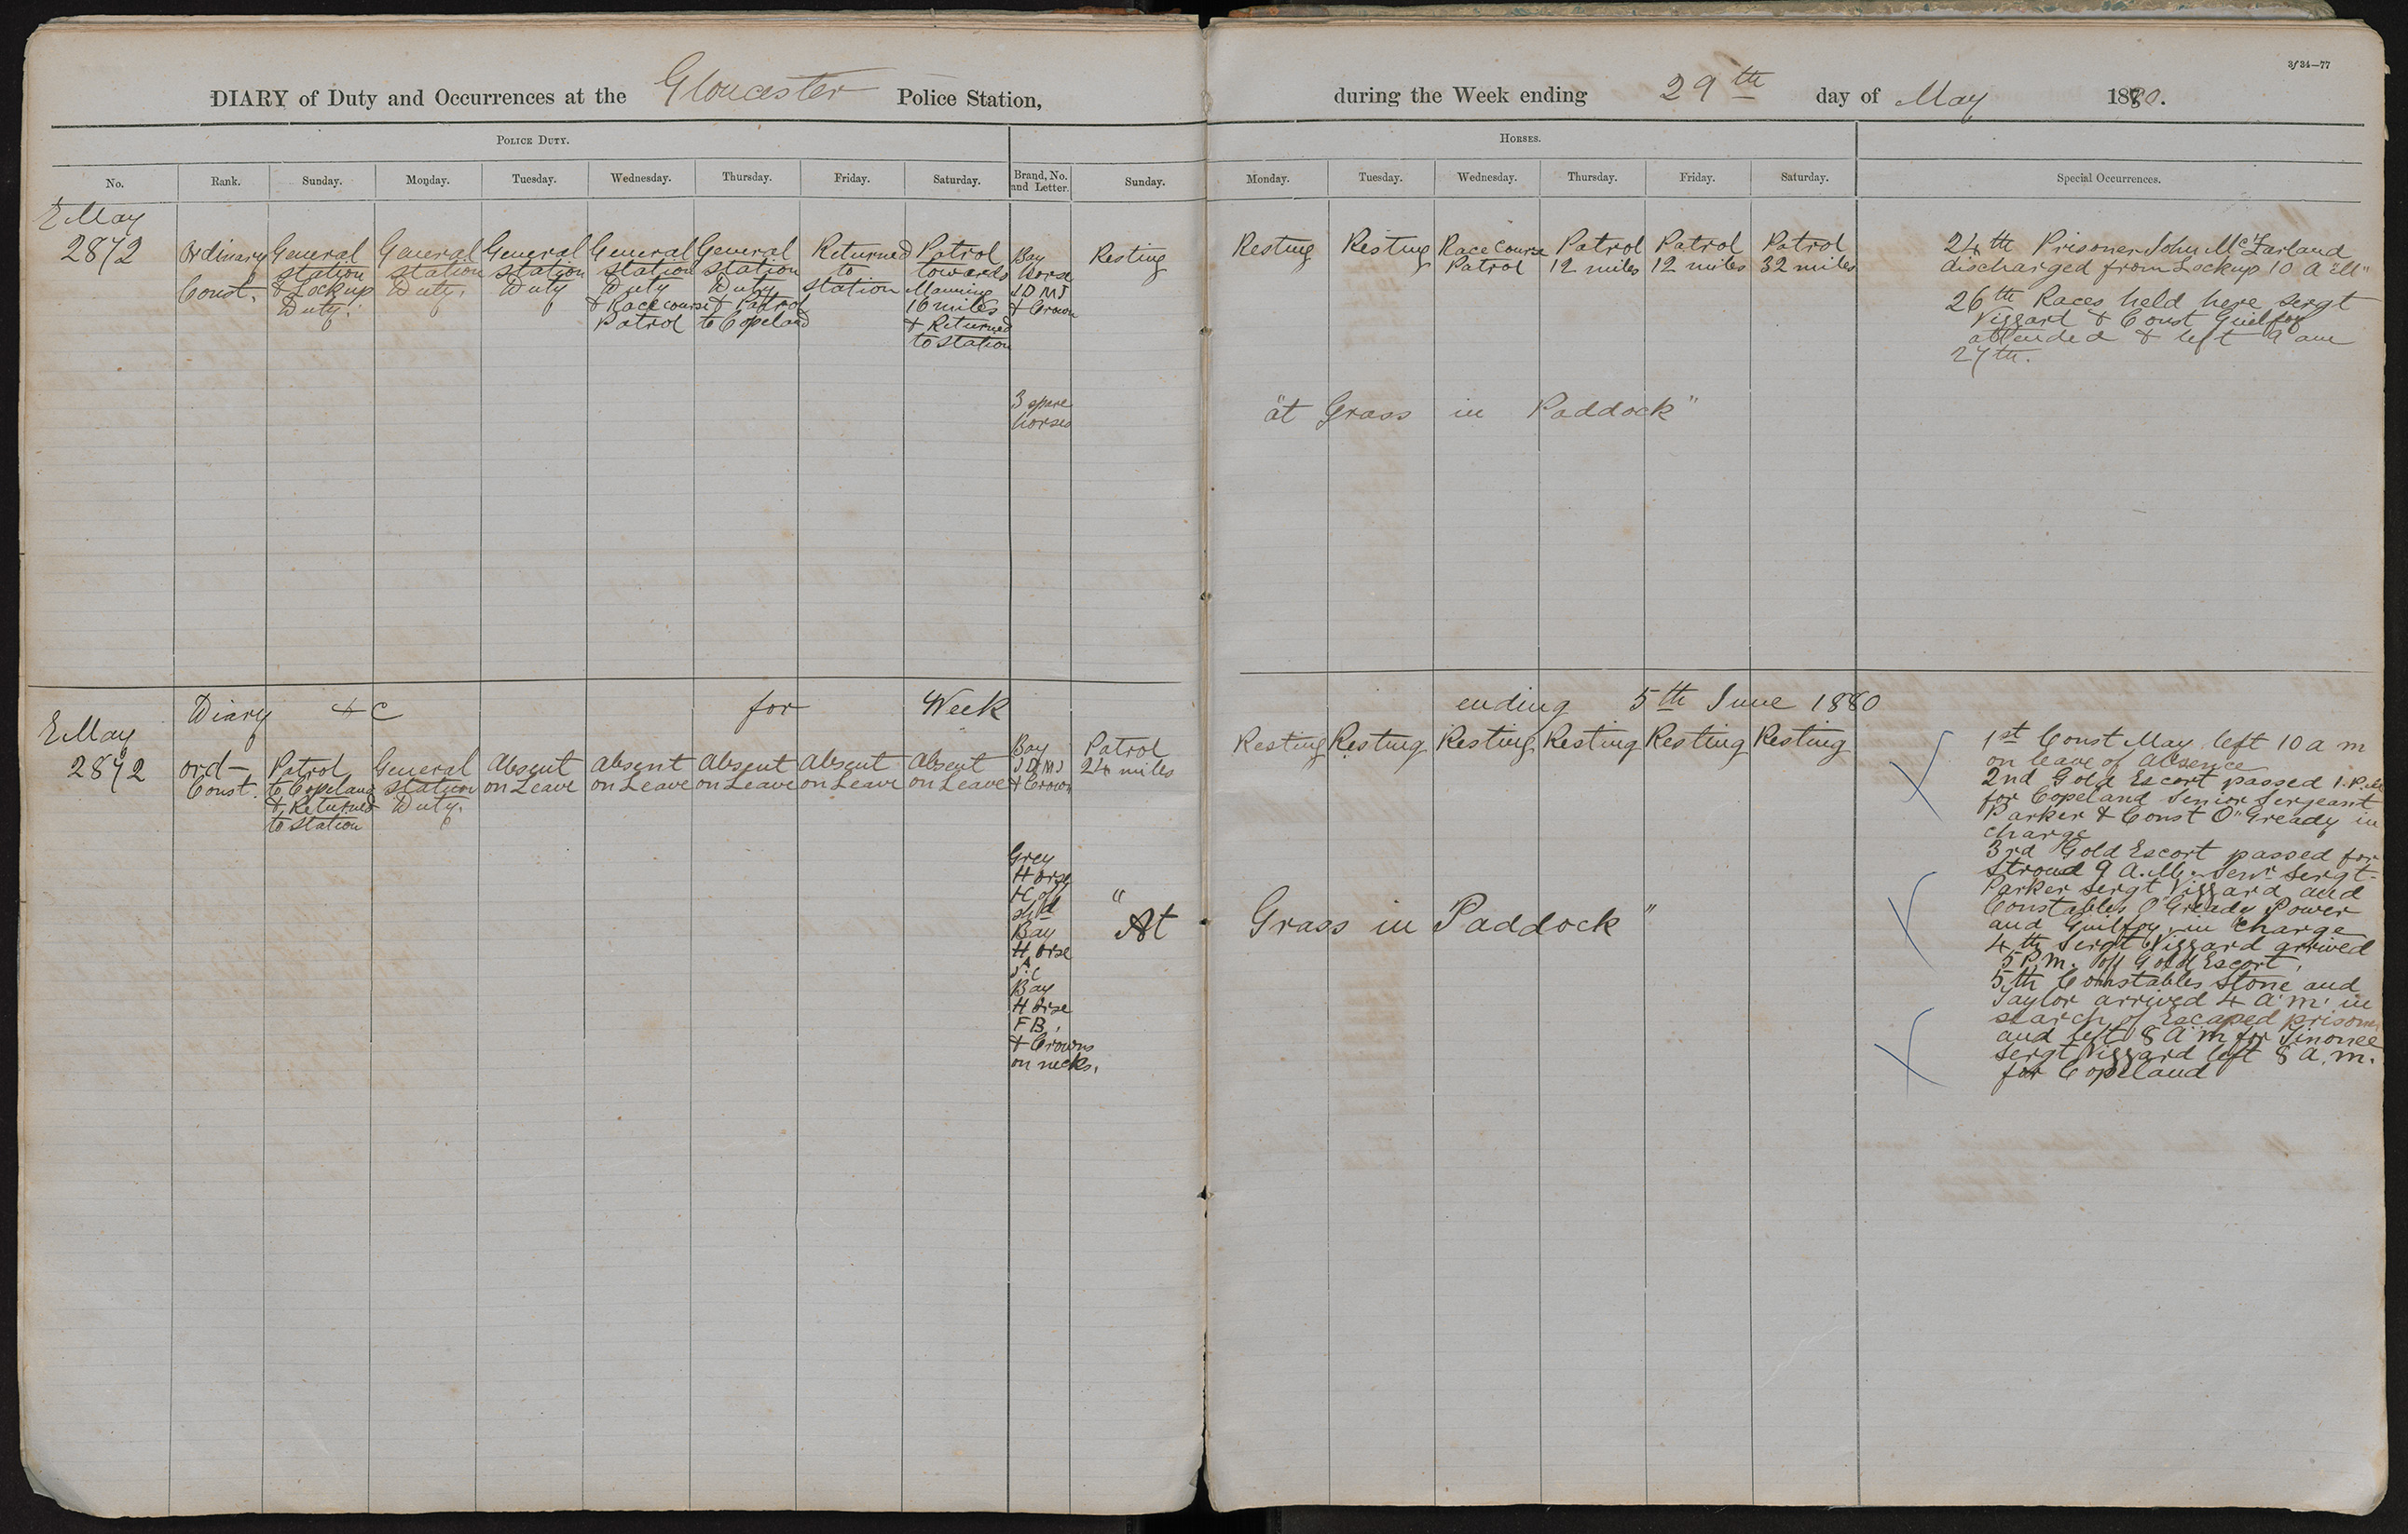 Diary of duty and occurrences at the Gloucester Police Station during the week ending the 29th day of May 1880